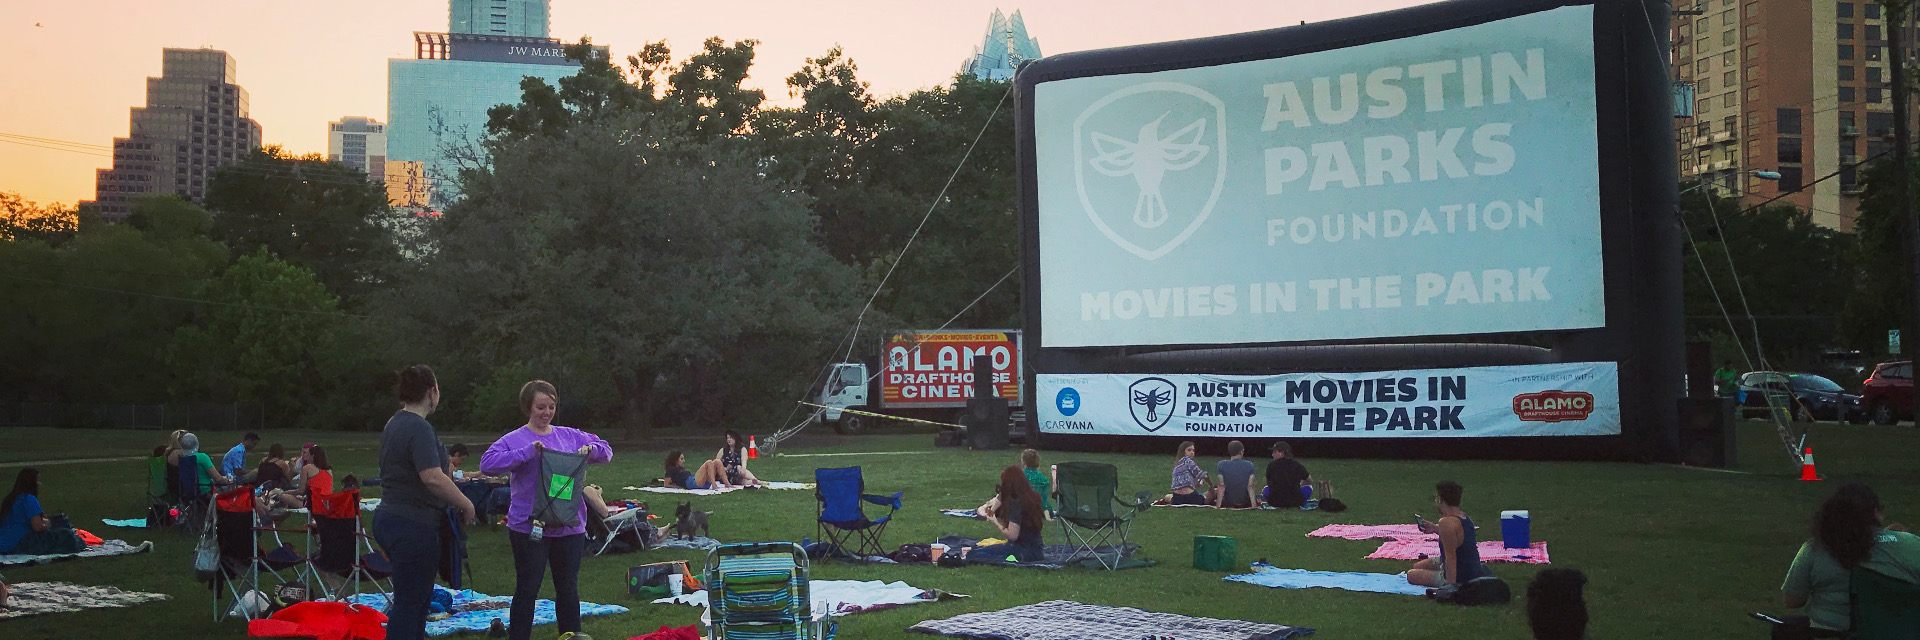 Austin Parks Foundation: Movies in the Park screening is a great way for anyone in Austin to see your favorite movies for free.